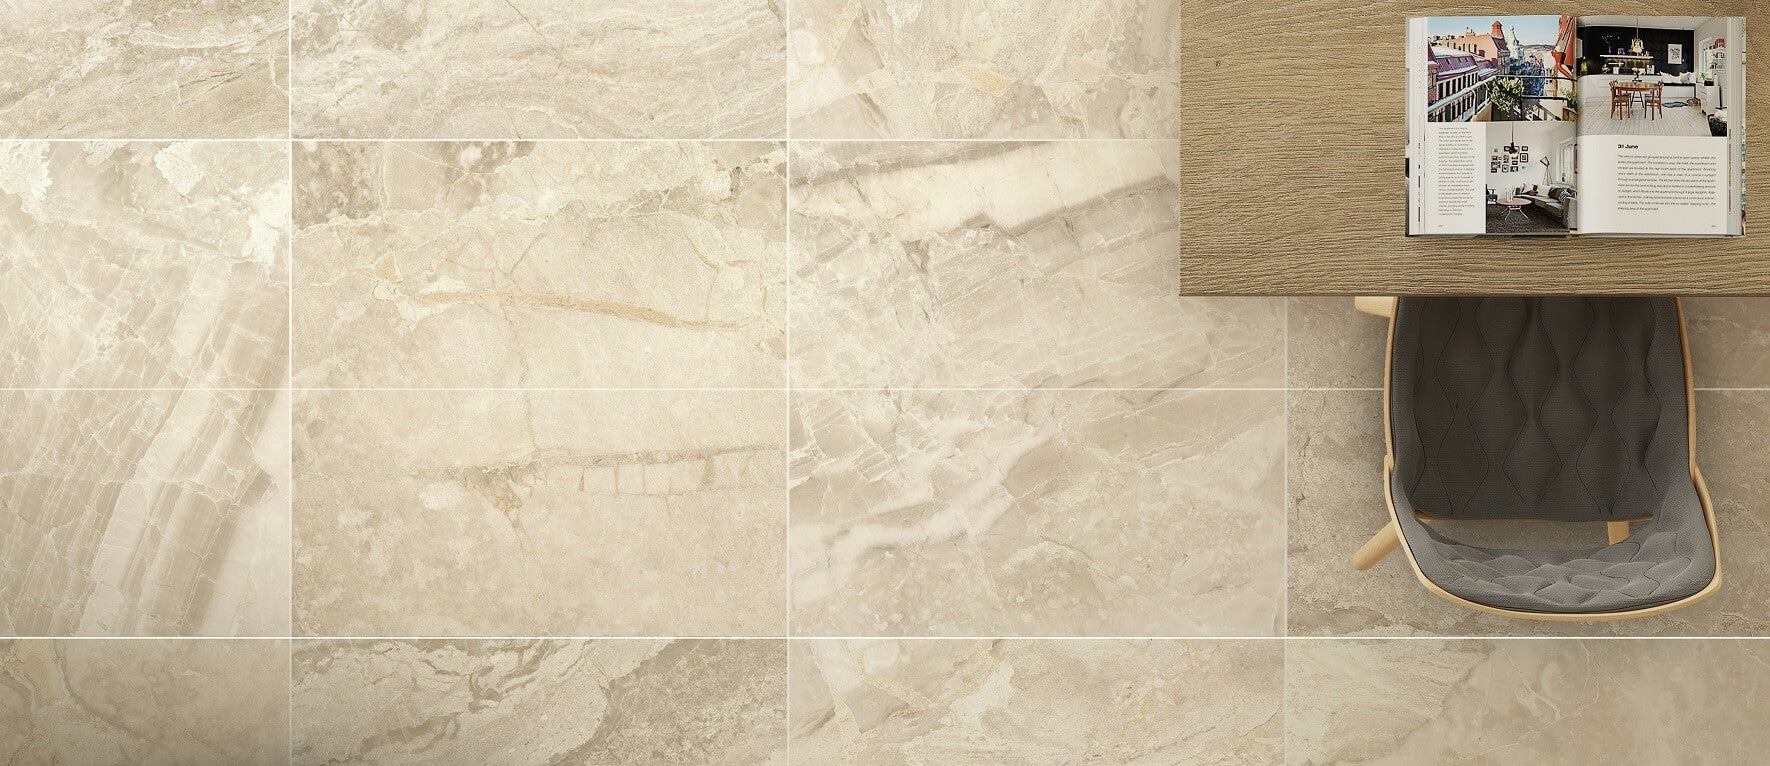 Porcelain kitchen tiles with an opulent cream marble effect antica marble effect large cream floor tiles with desk and chair dailygadgetfo Choice Image